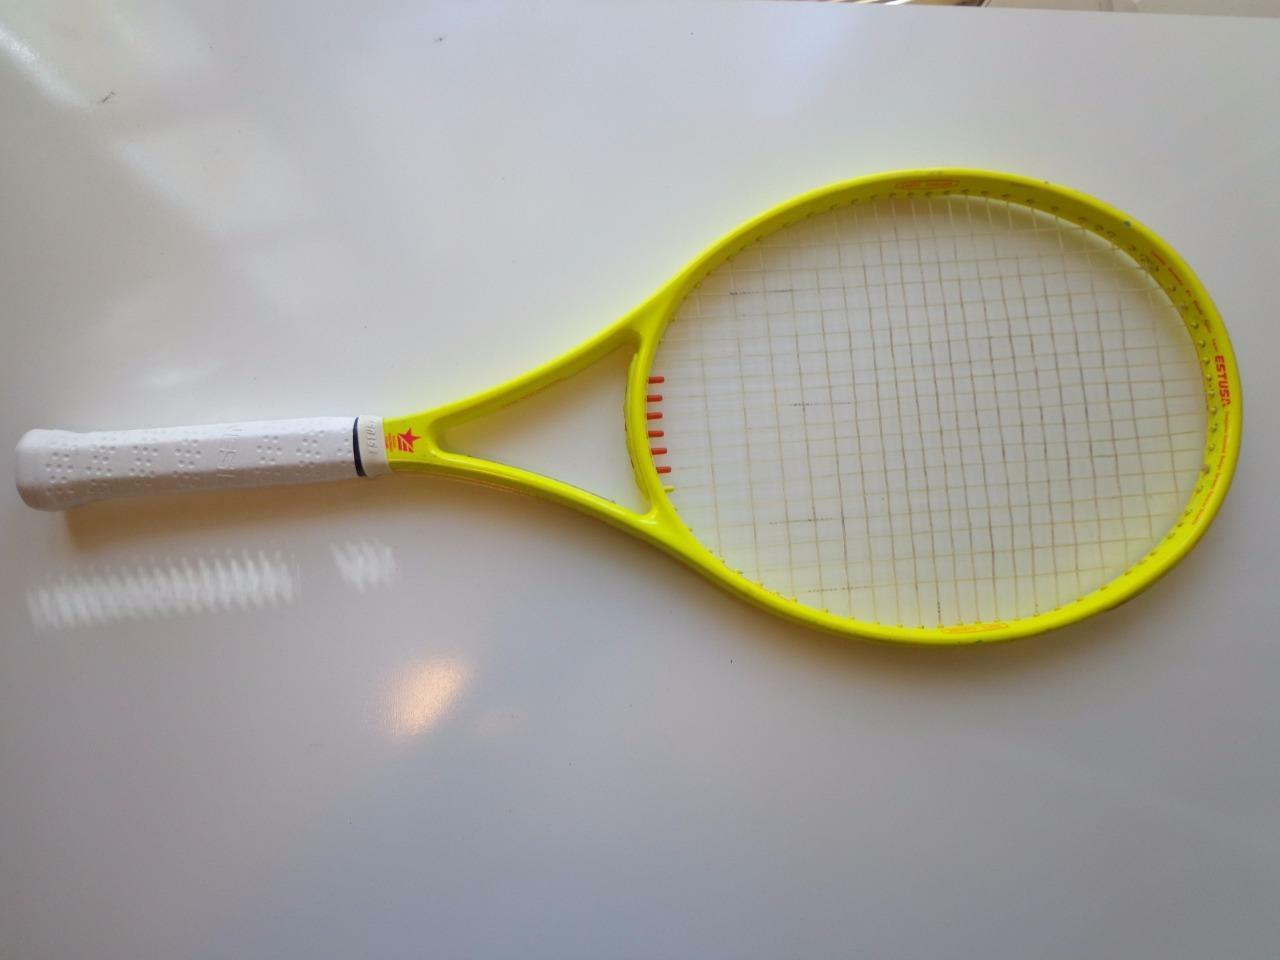 Estusa Jimmy Connors AeroSupra BKS Kinetic 4 3/8 grip Tennis Racquet